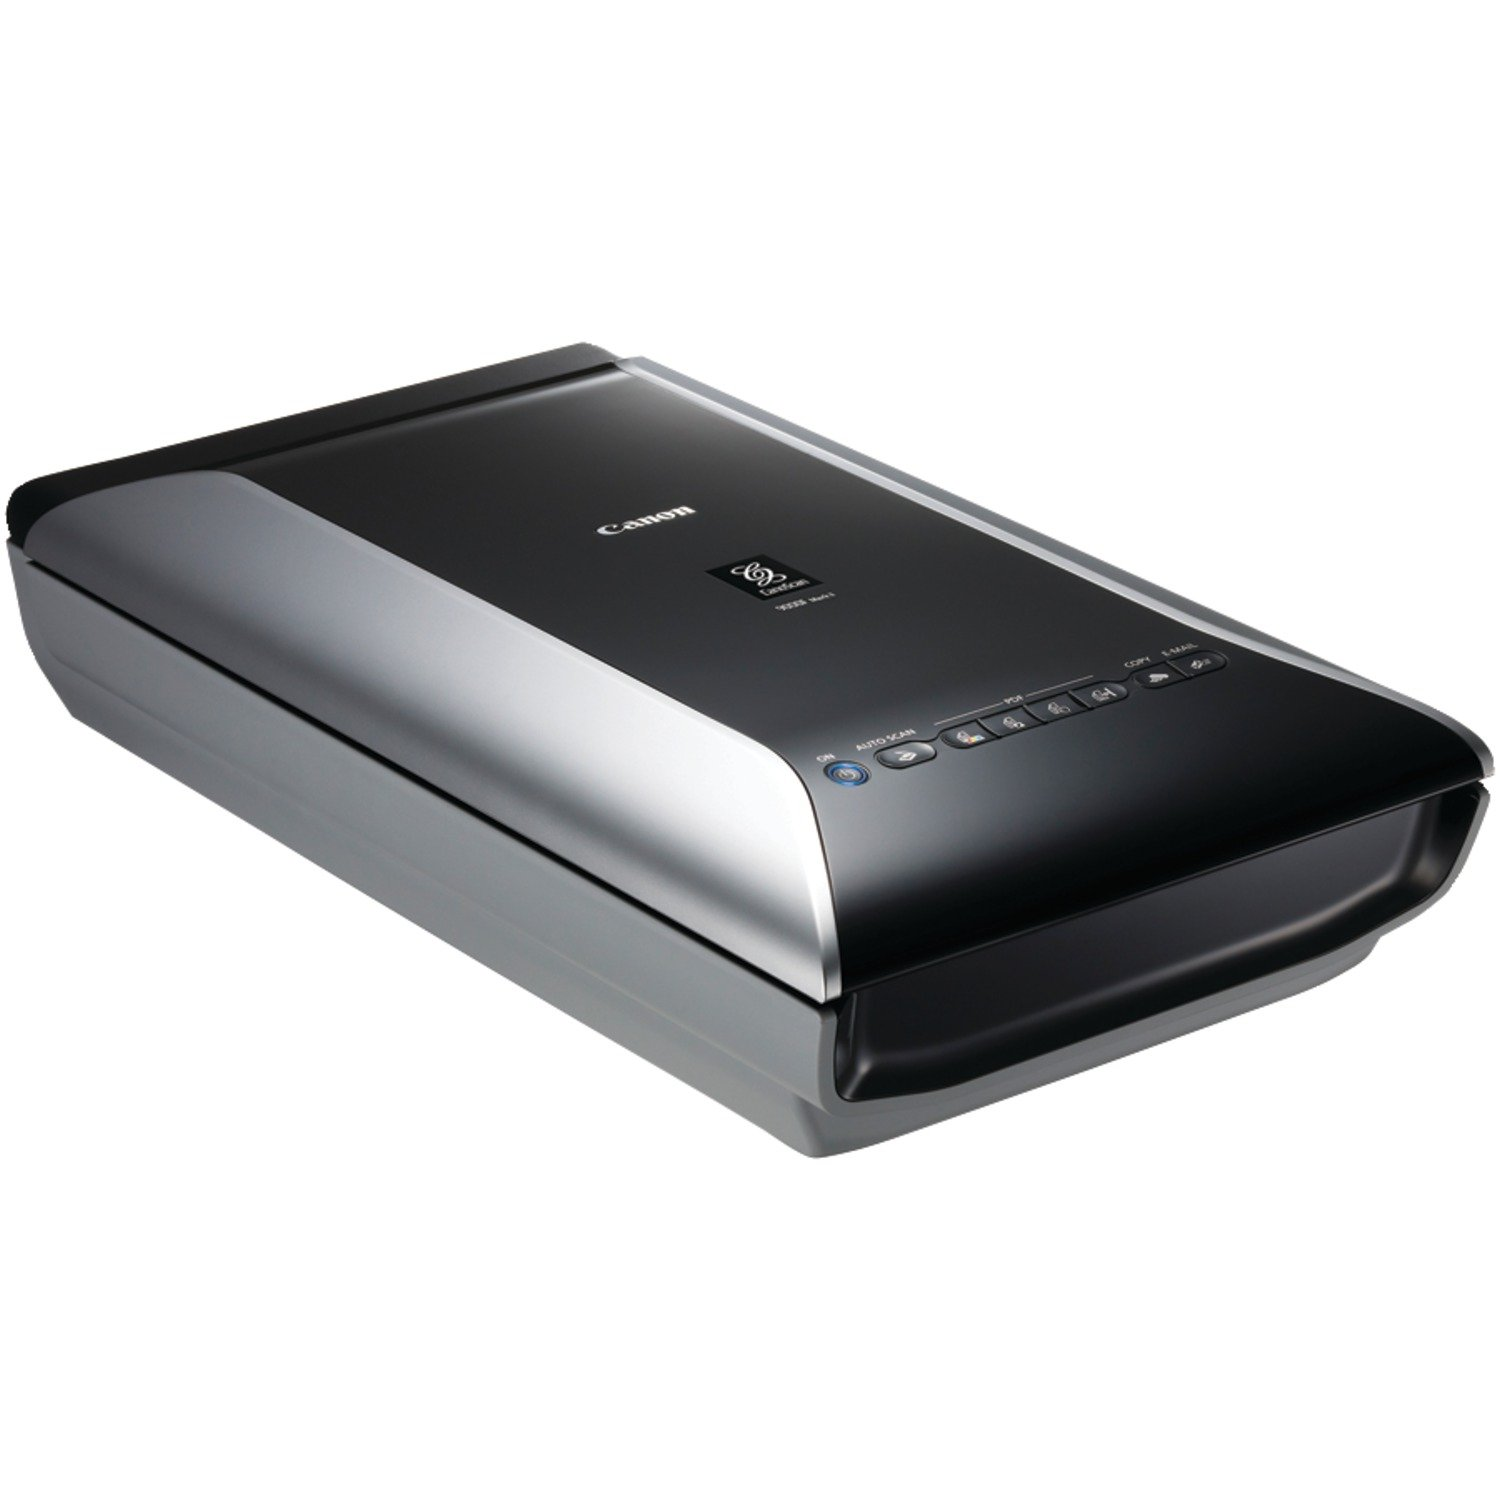 CANON CANOSCAN 9000F SCANNER DRIVER FOR MAC DOWNLOAD